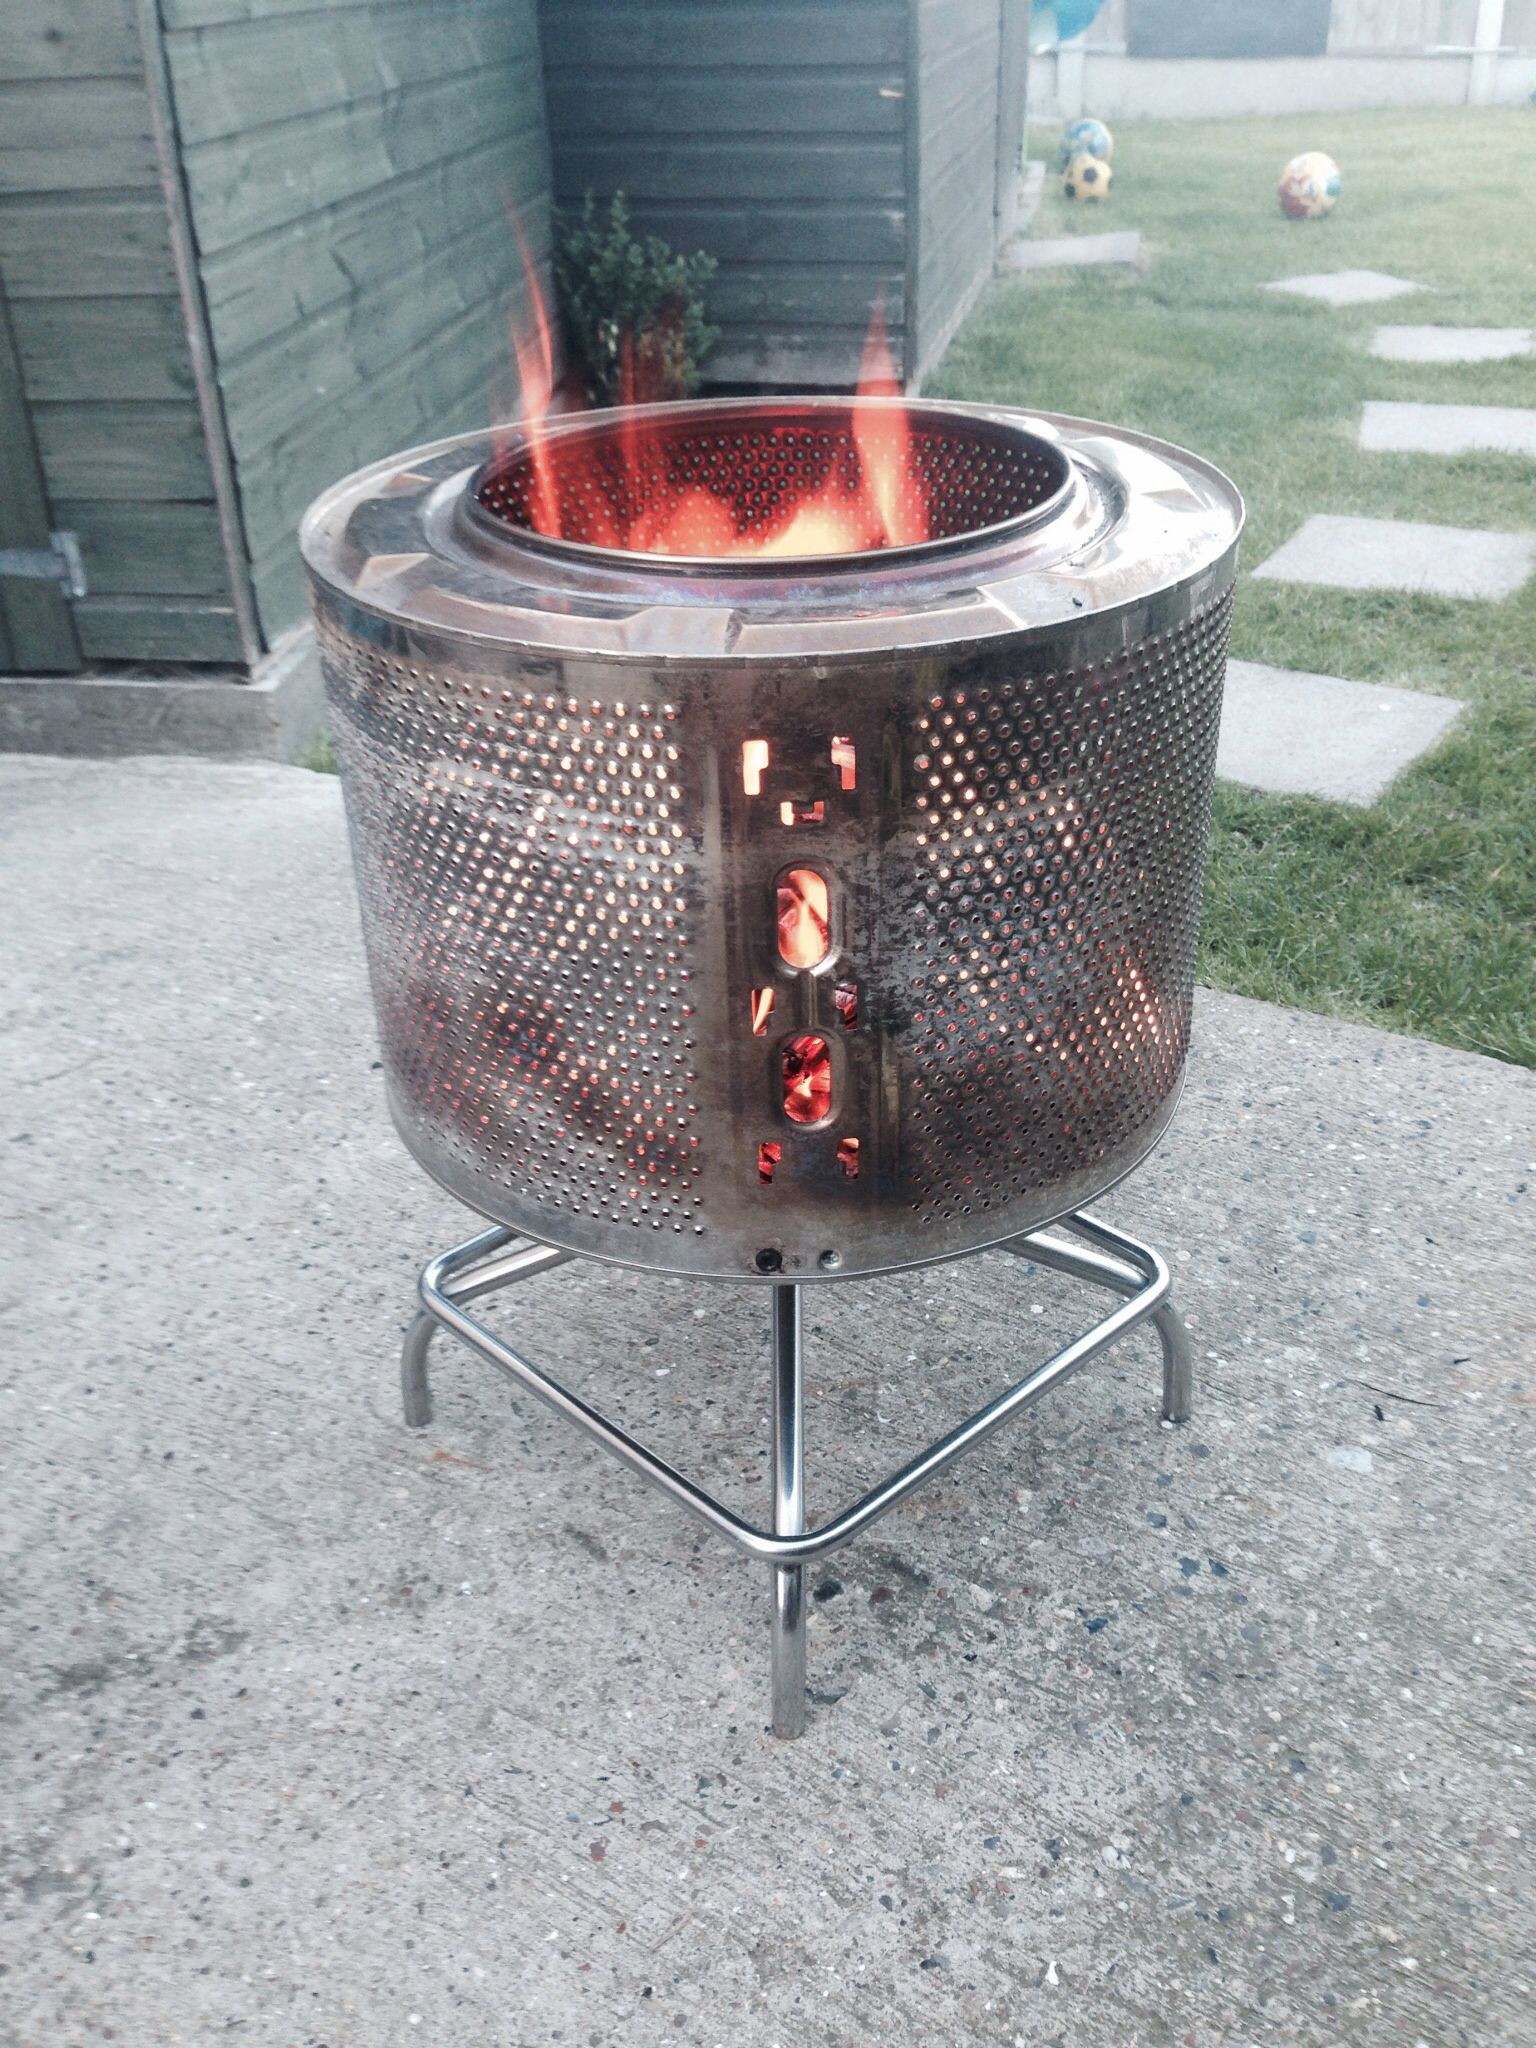 New Fire Pit Washing Machine Drum And Stainless Steel Stool Base Diy Crafts And Projects